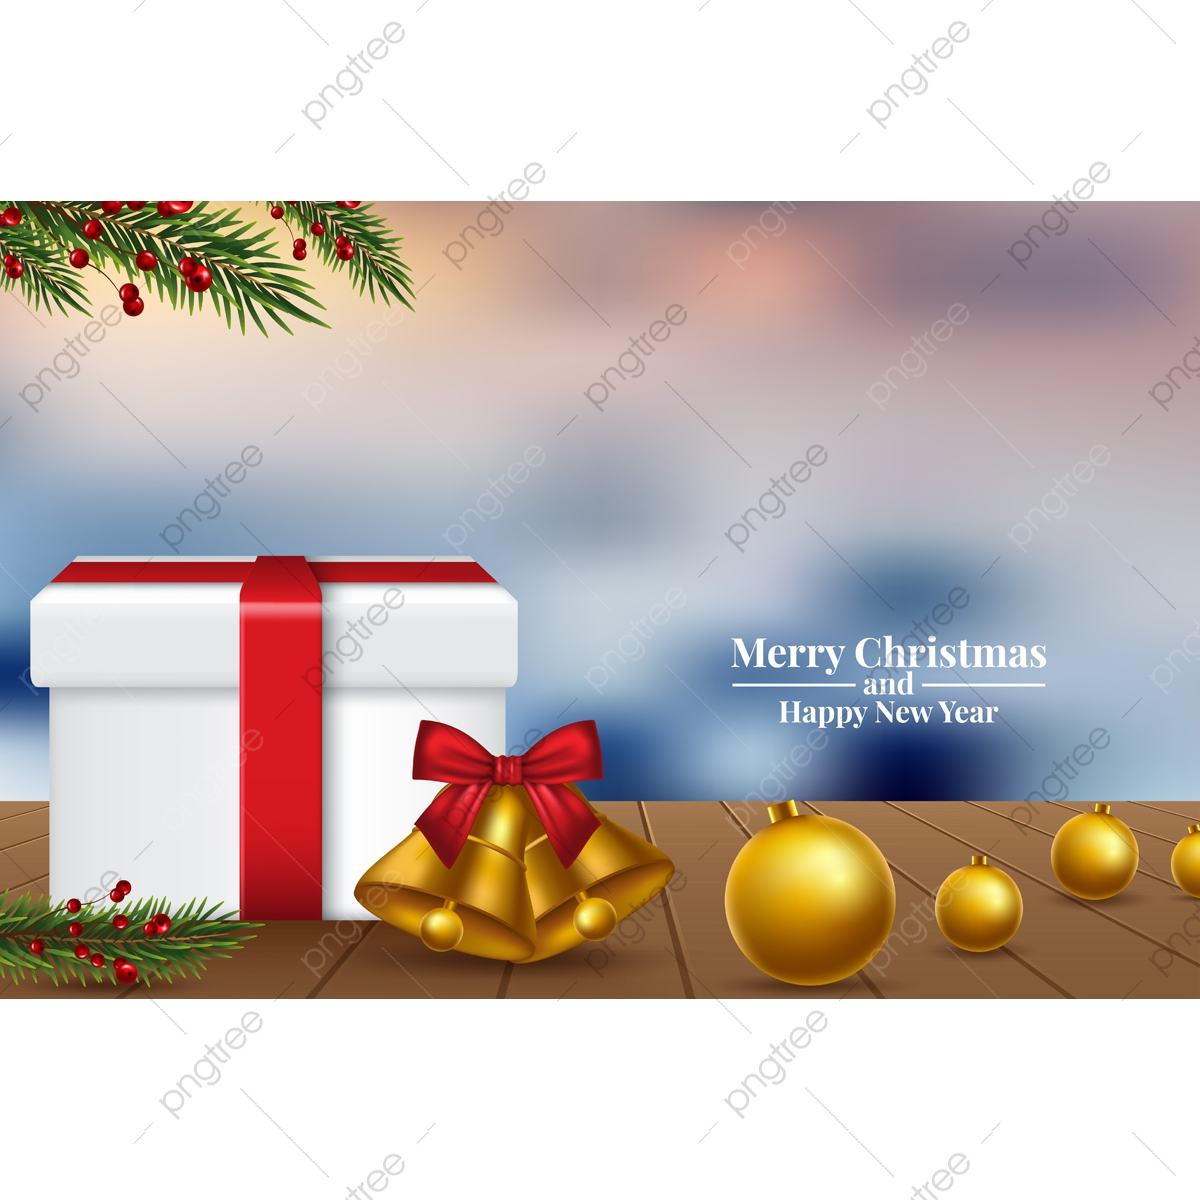 Merry Christmas And Happy New Year 2020 Greeting Card Template Download On Pngtree